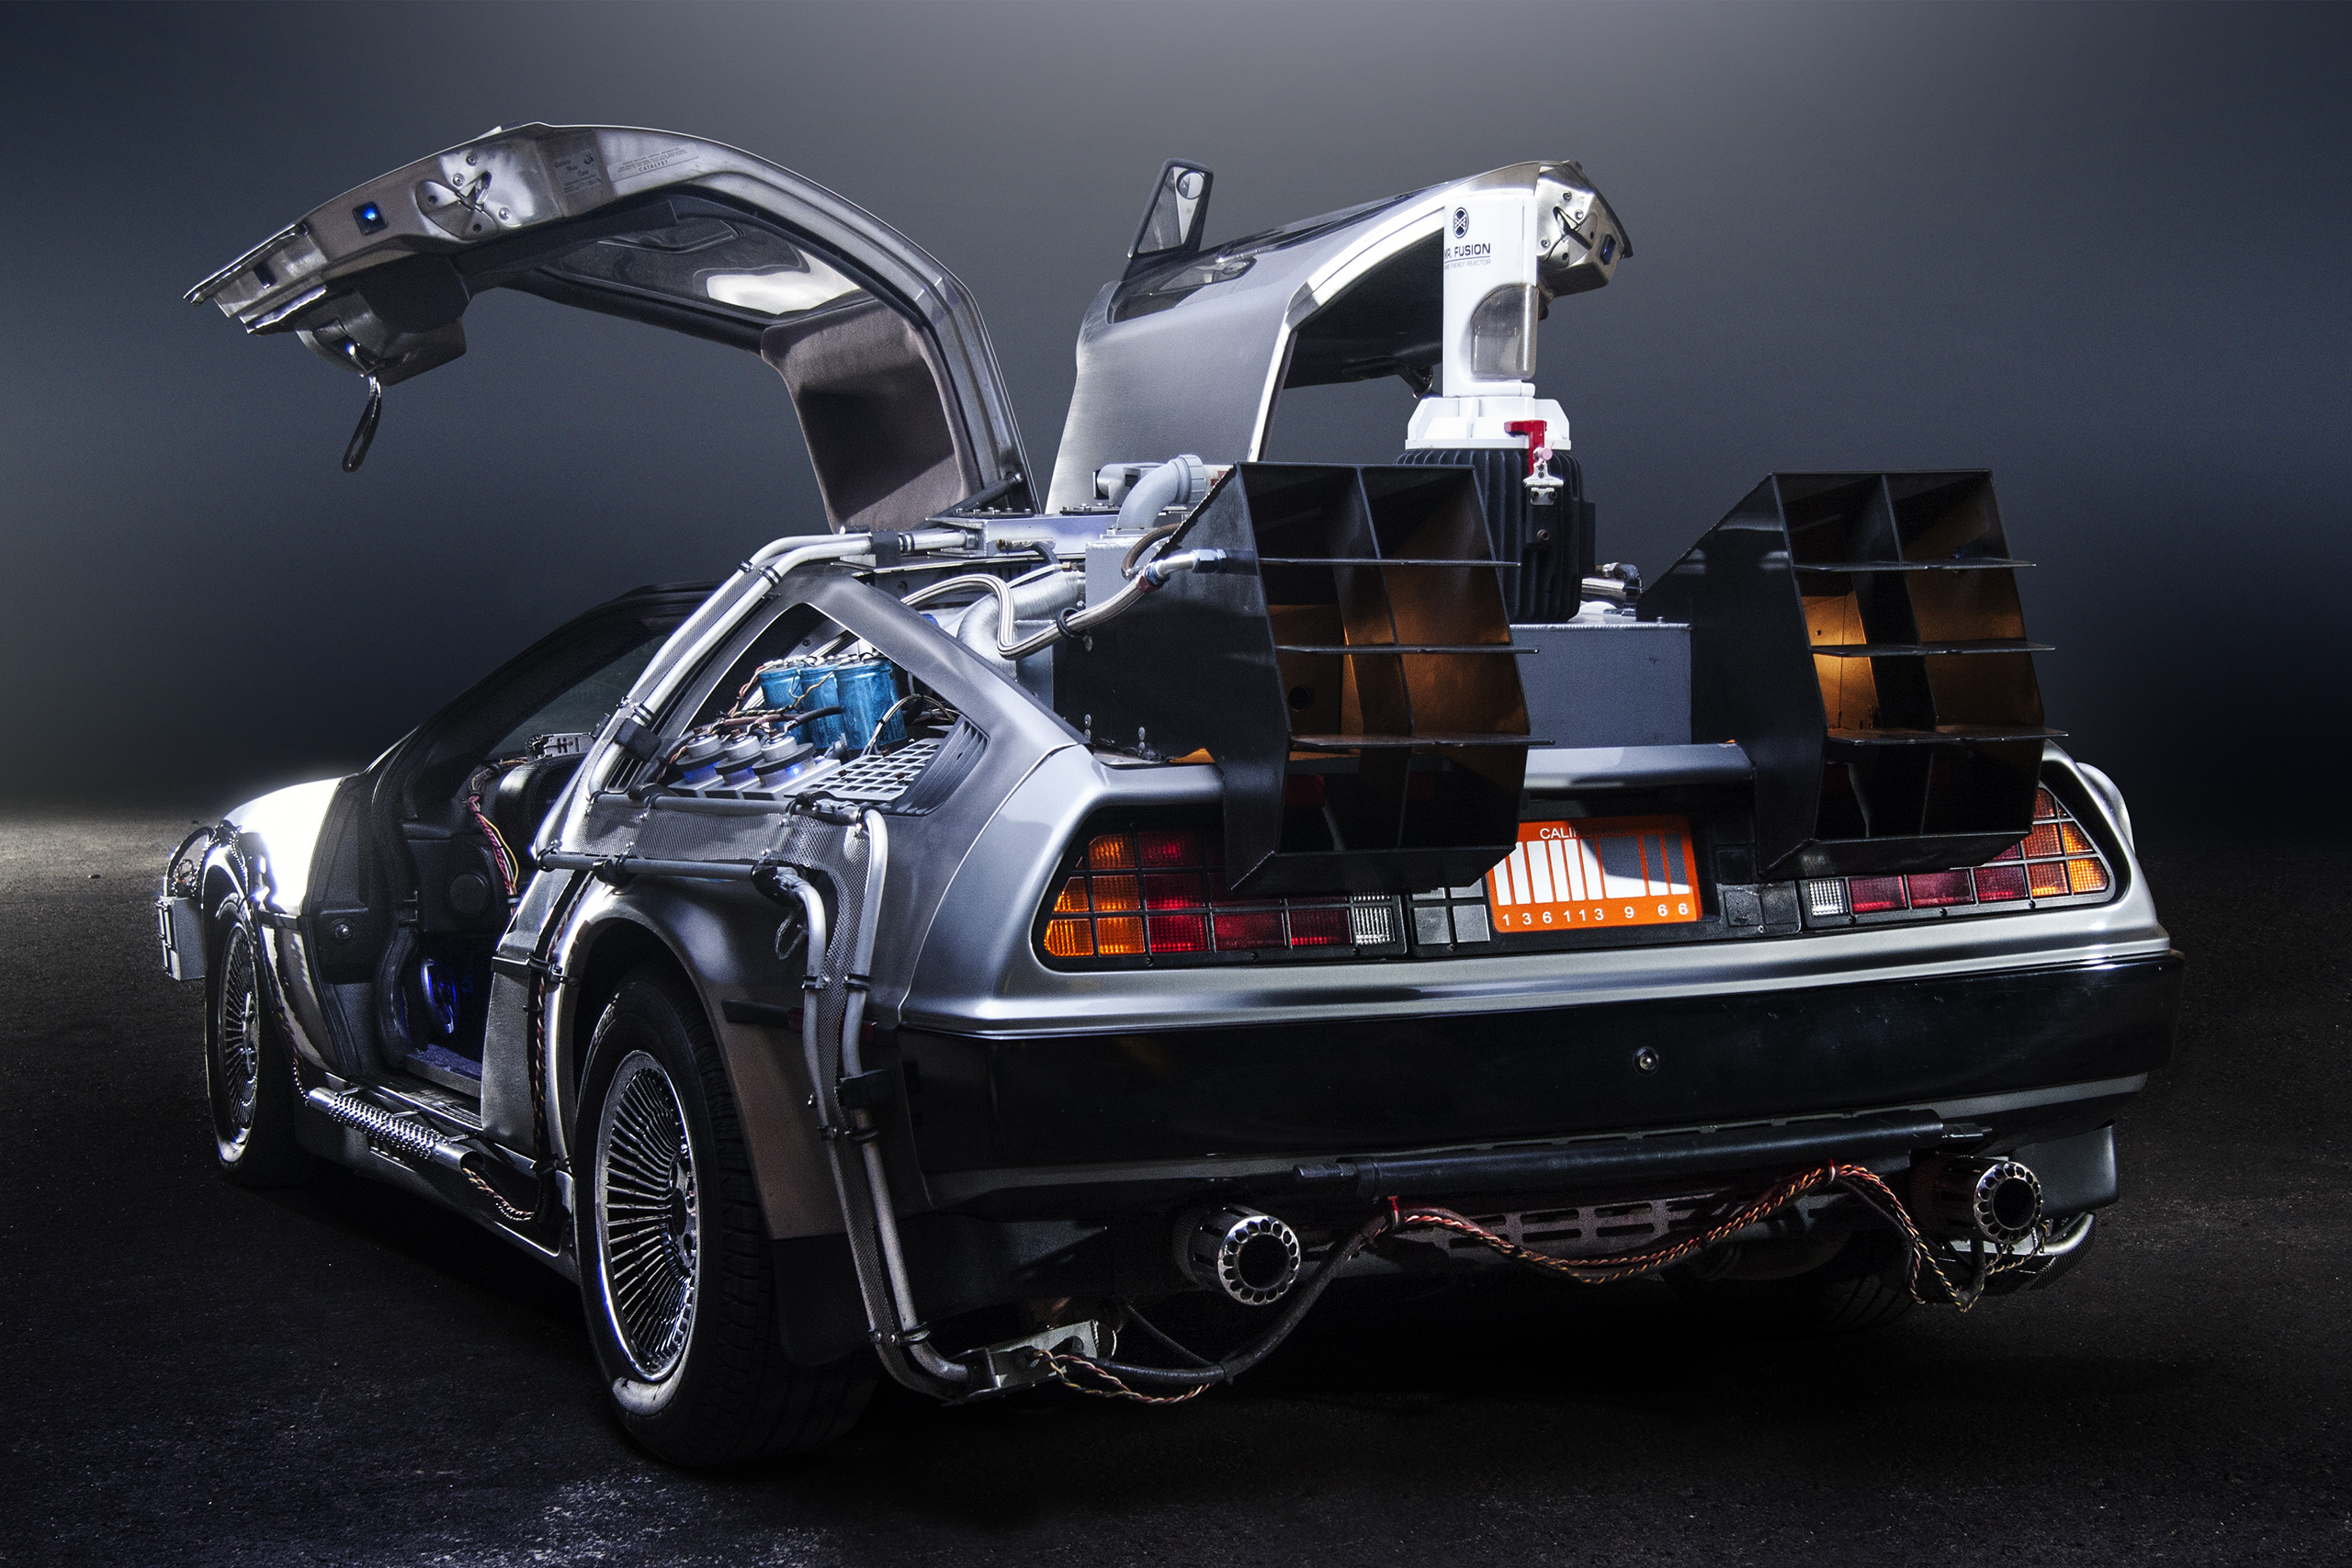 time travel hoverboards and instant pizza degrees to consider on delorean time machine